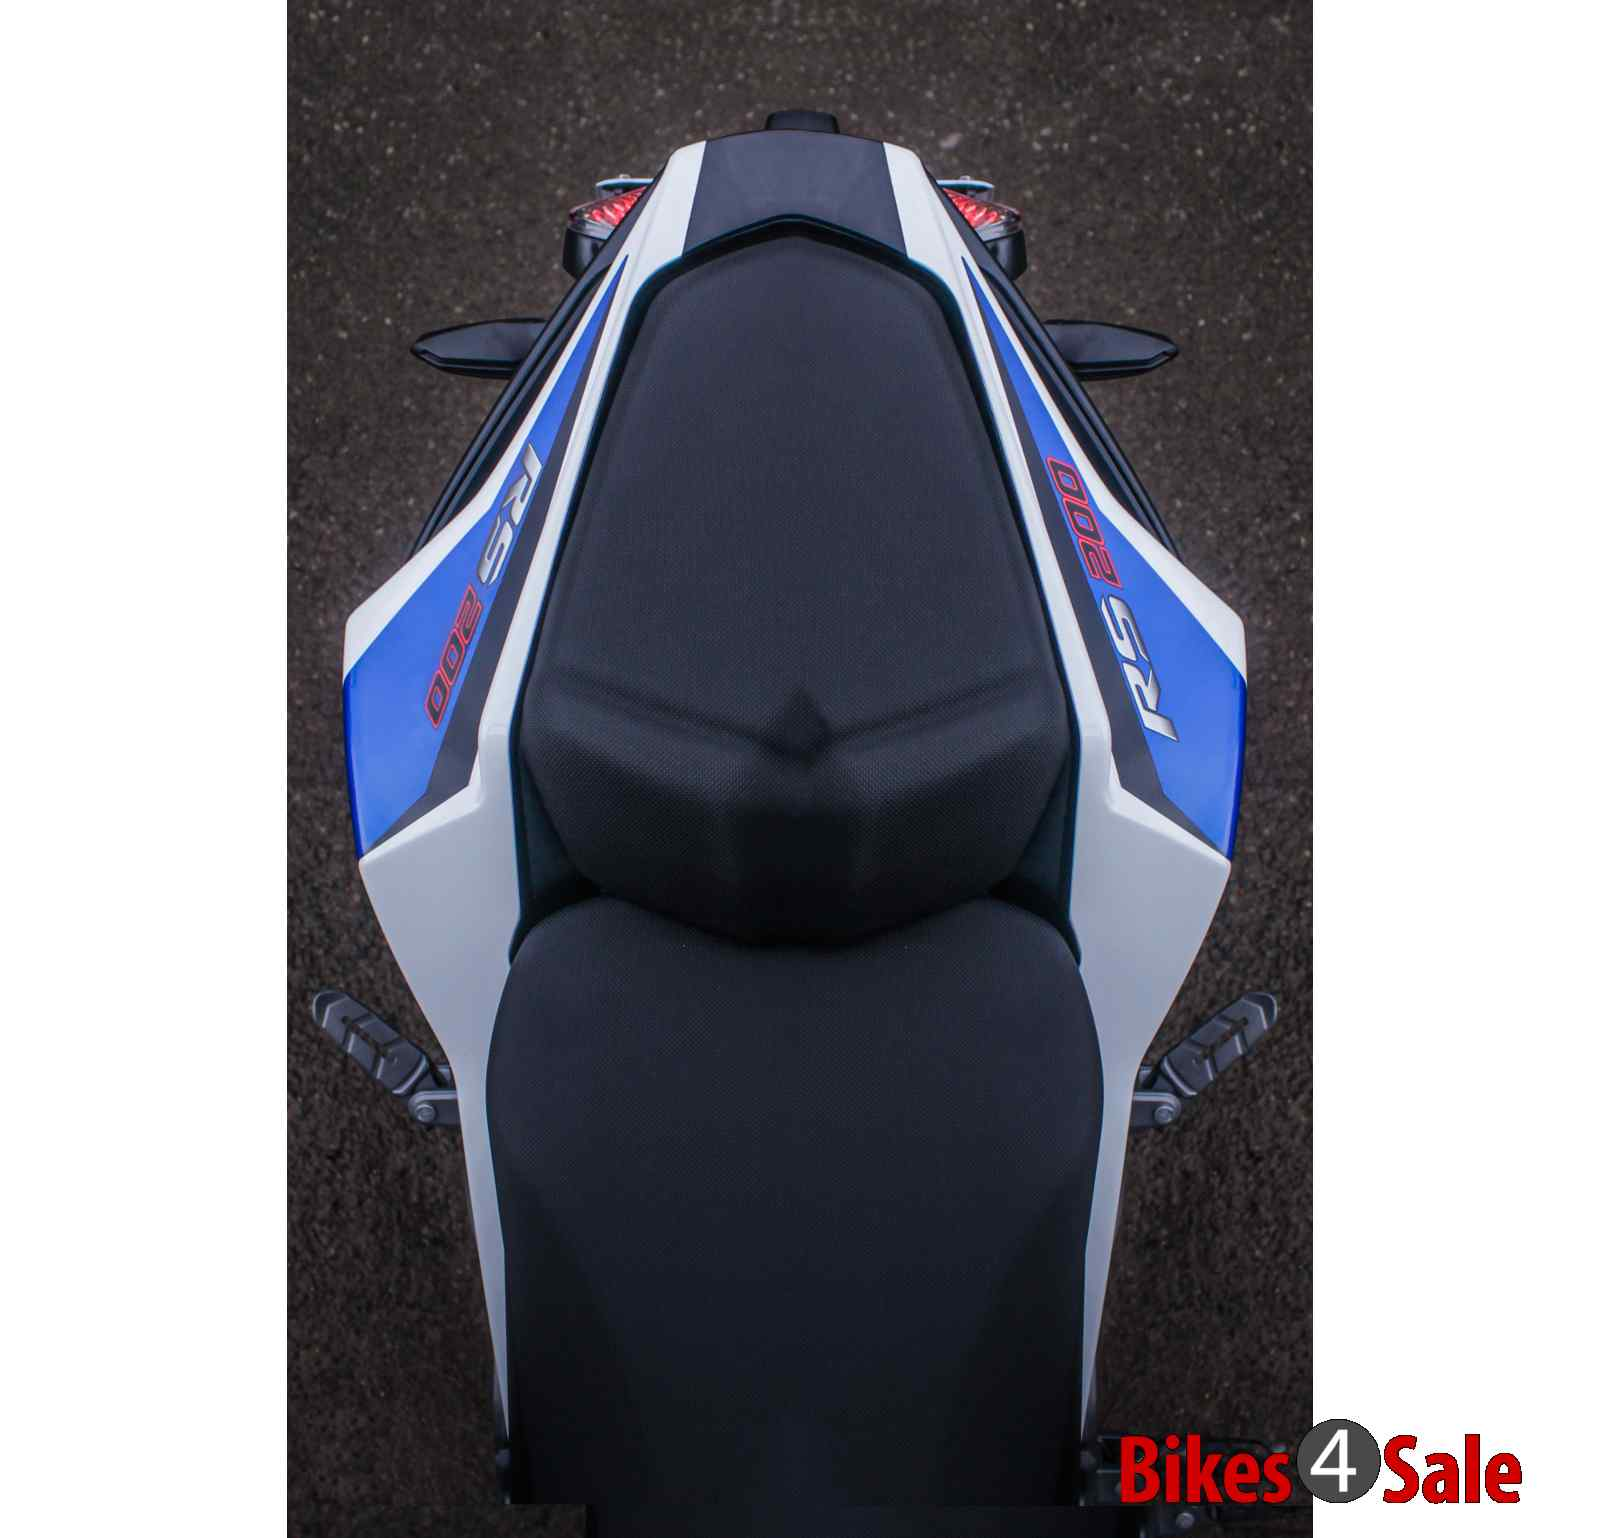 Bajaj Pulsar Rs 200 Seats Top View